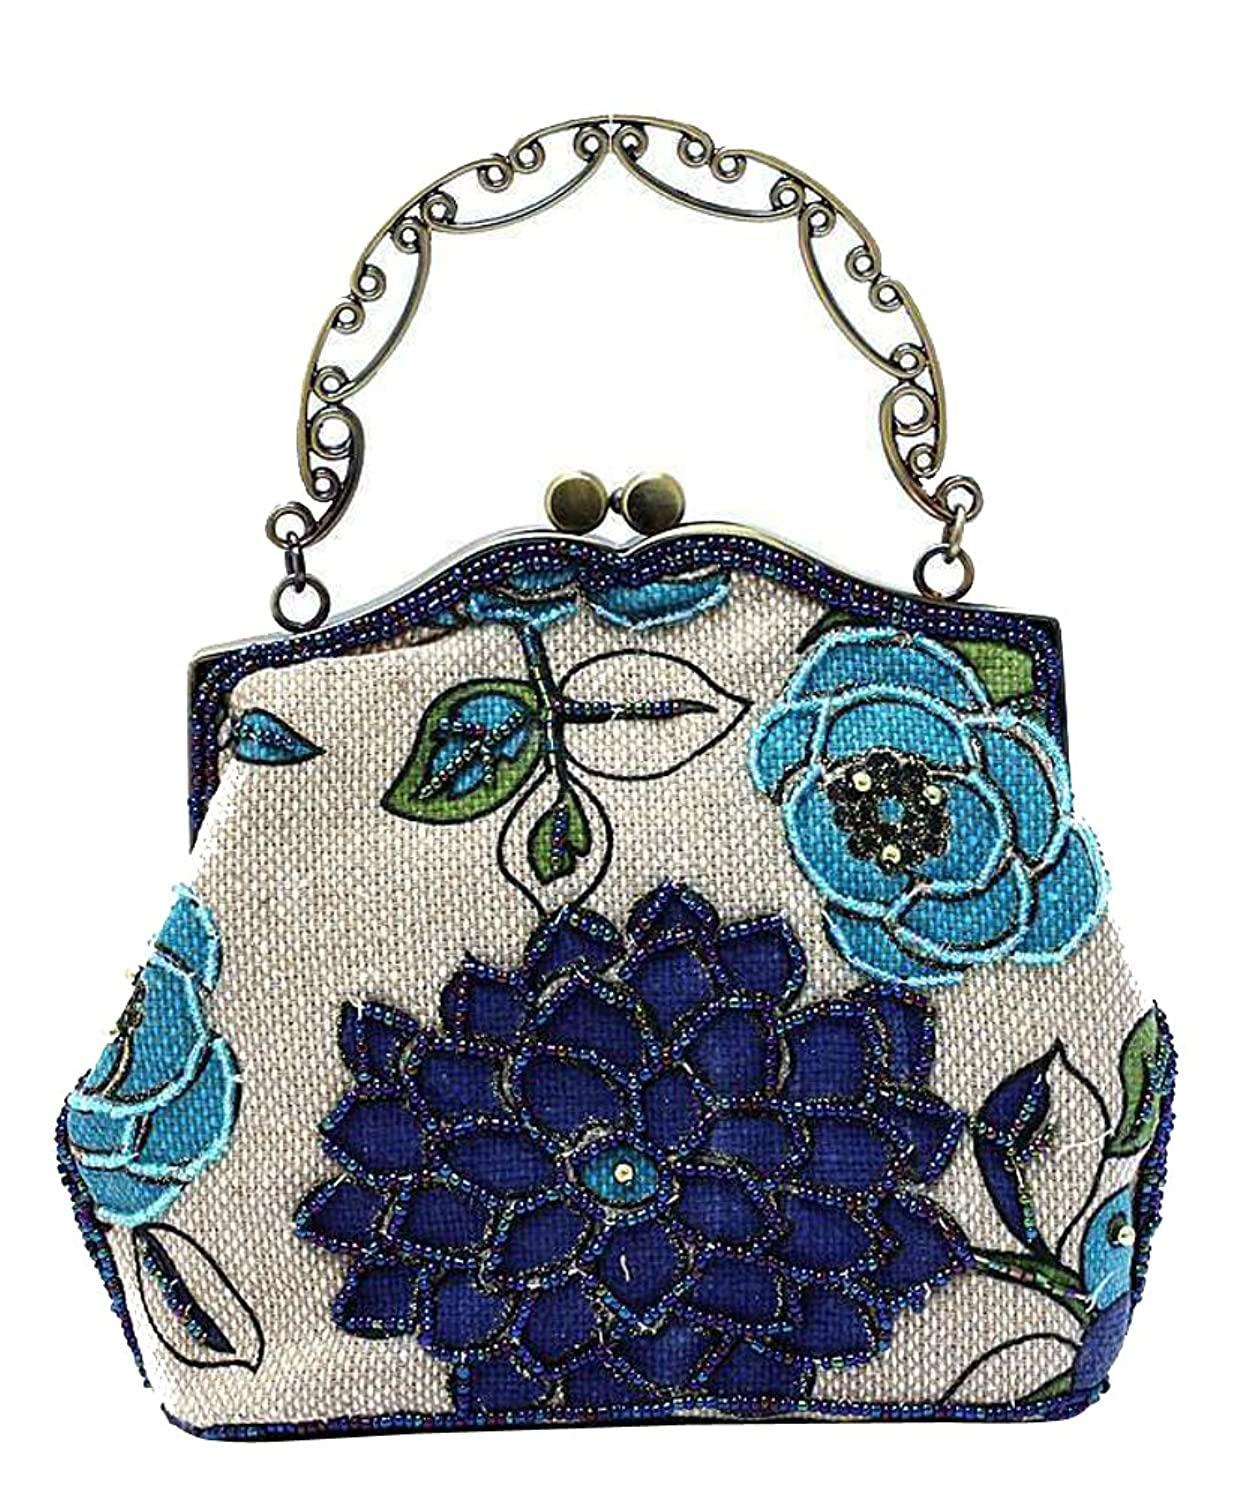 1920s Handbags, Purses, and Shopping Bag Styles ILISHOP Womens Vintage Luxury Printing Beaded Women Handbag Evening Bag $19.99 AT vintagedancer.com